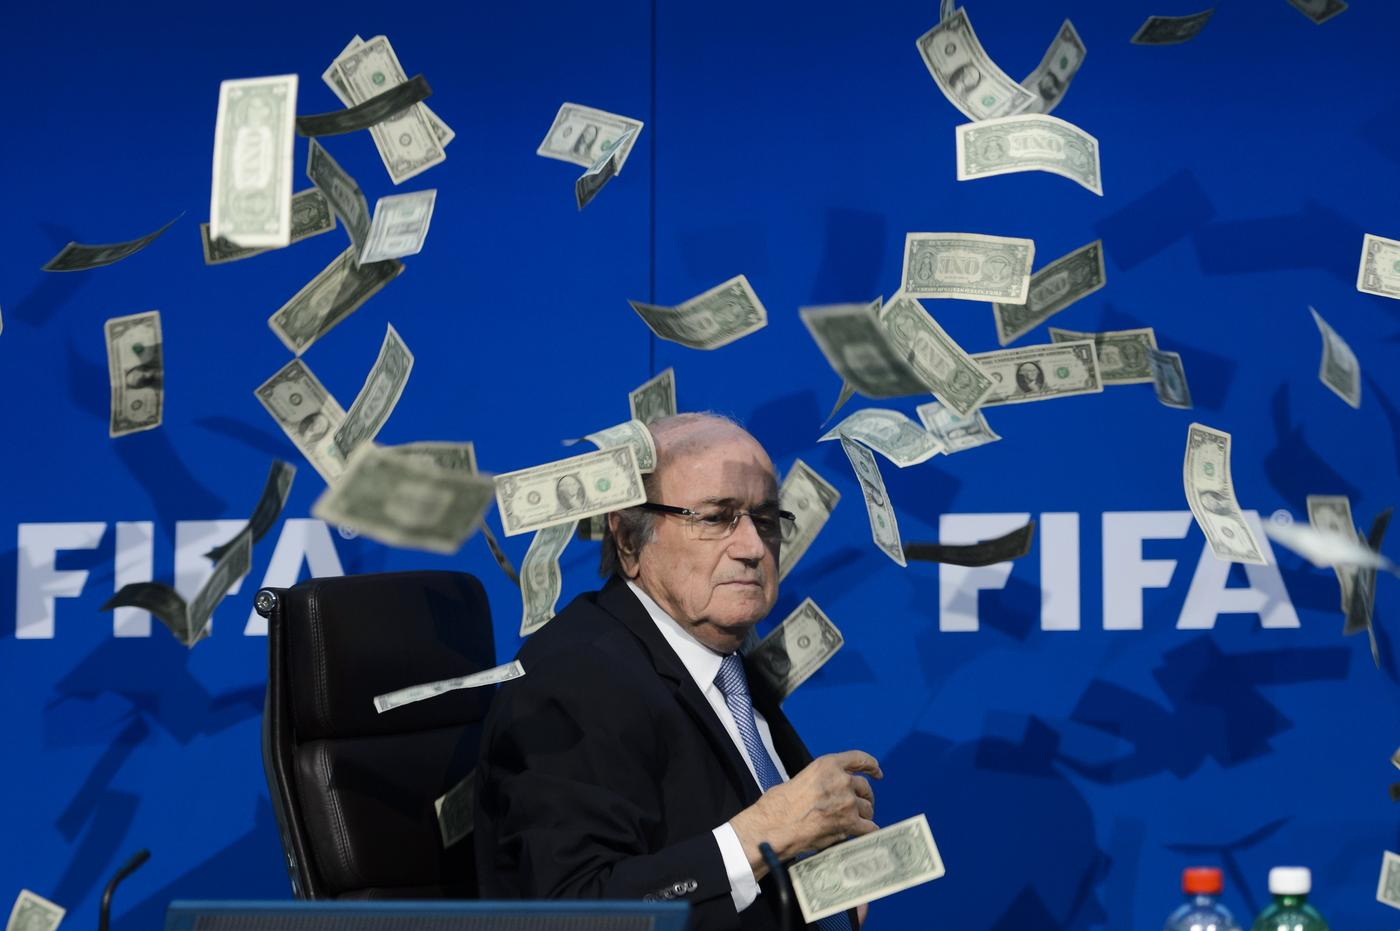 Lee Nelson showers Sepp Blatter with cash after gatecrashing Fifa press conference